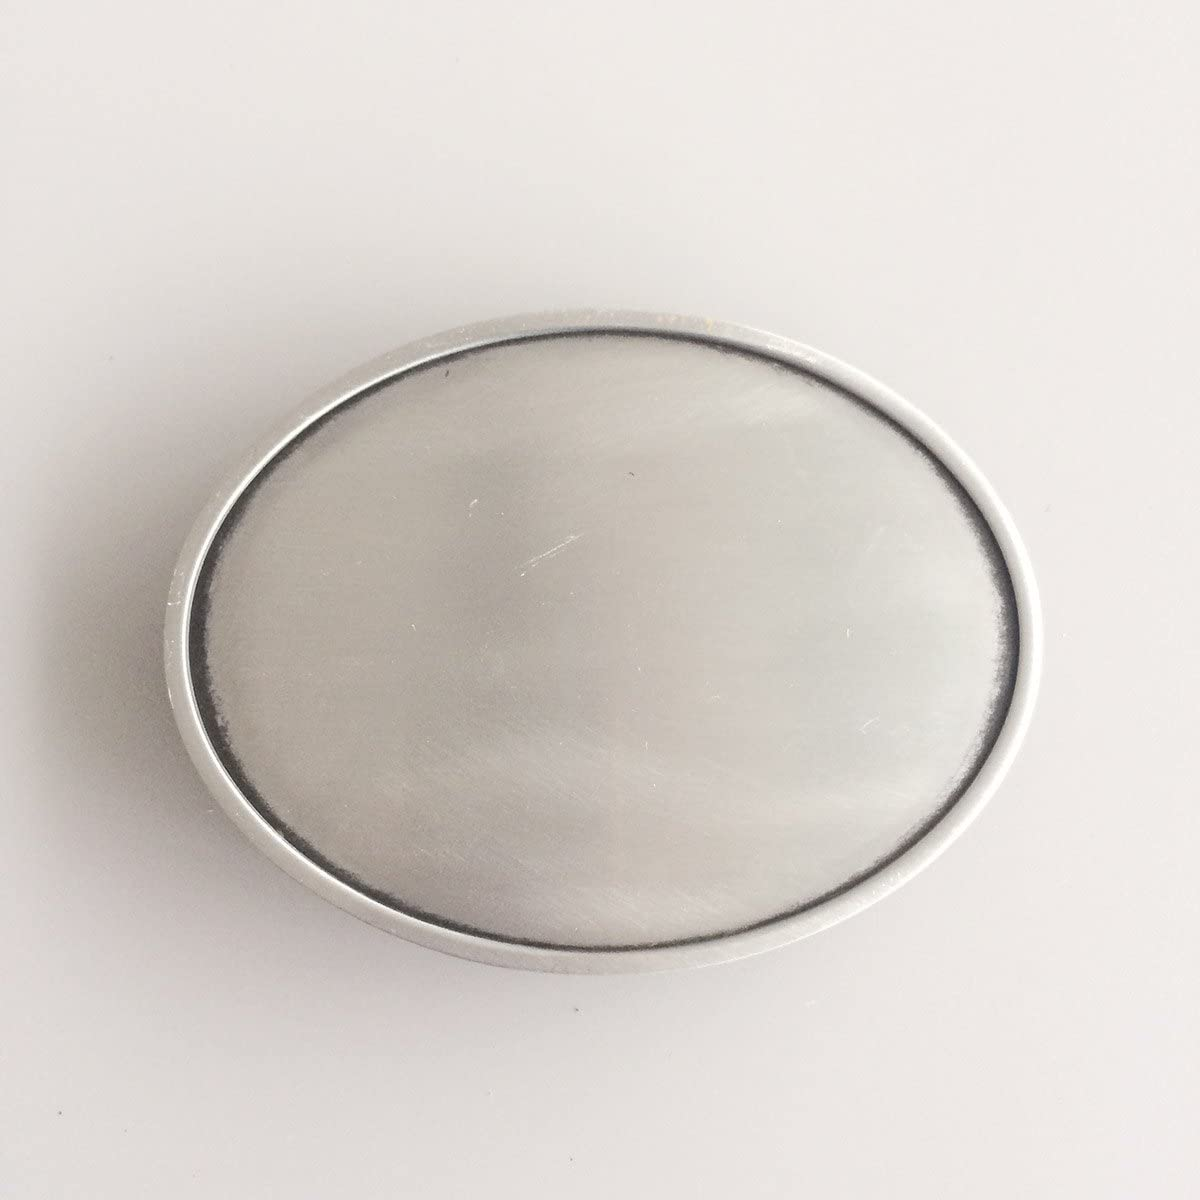 New Vintage Silver Plated Classic Oval Blank Custom Belt Buckle also Stock in US